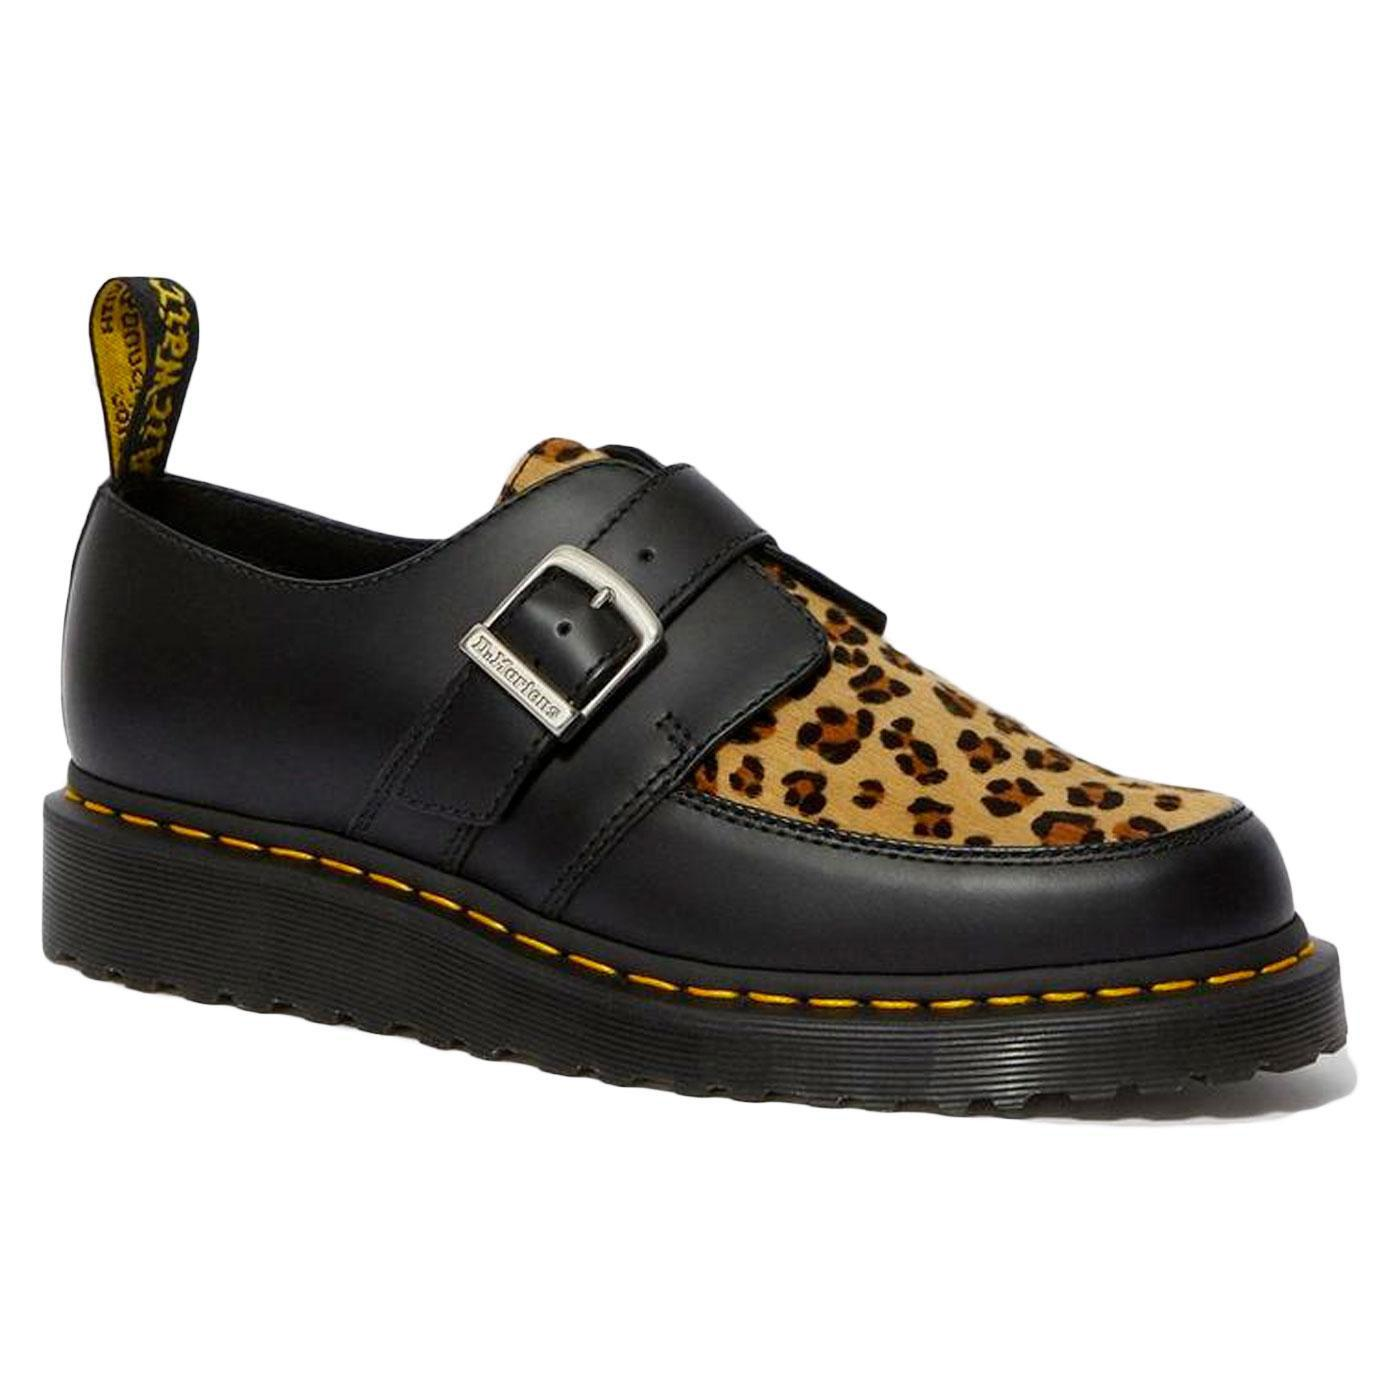 Ramsey Monk DR MARTENS Leopard Print Creeper Shoes